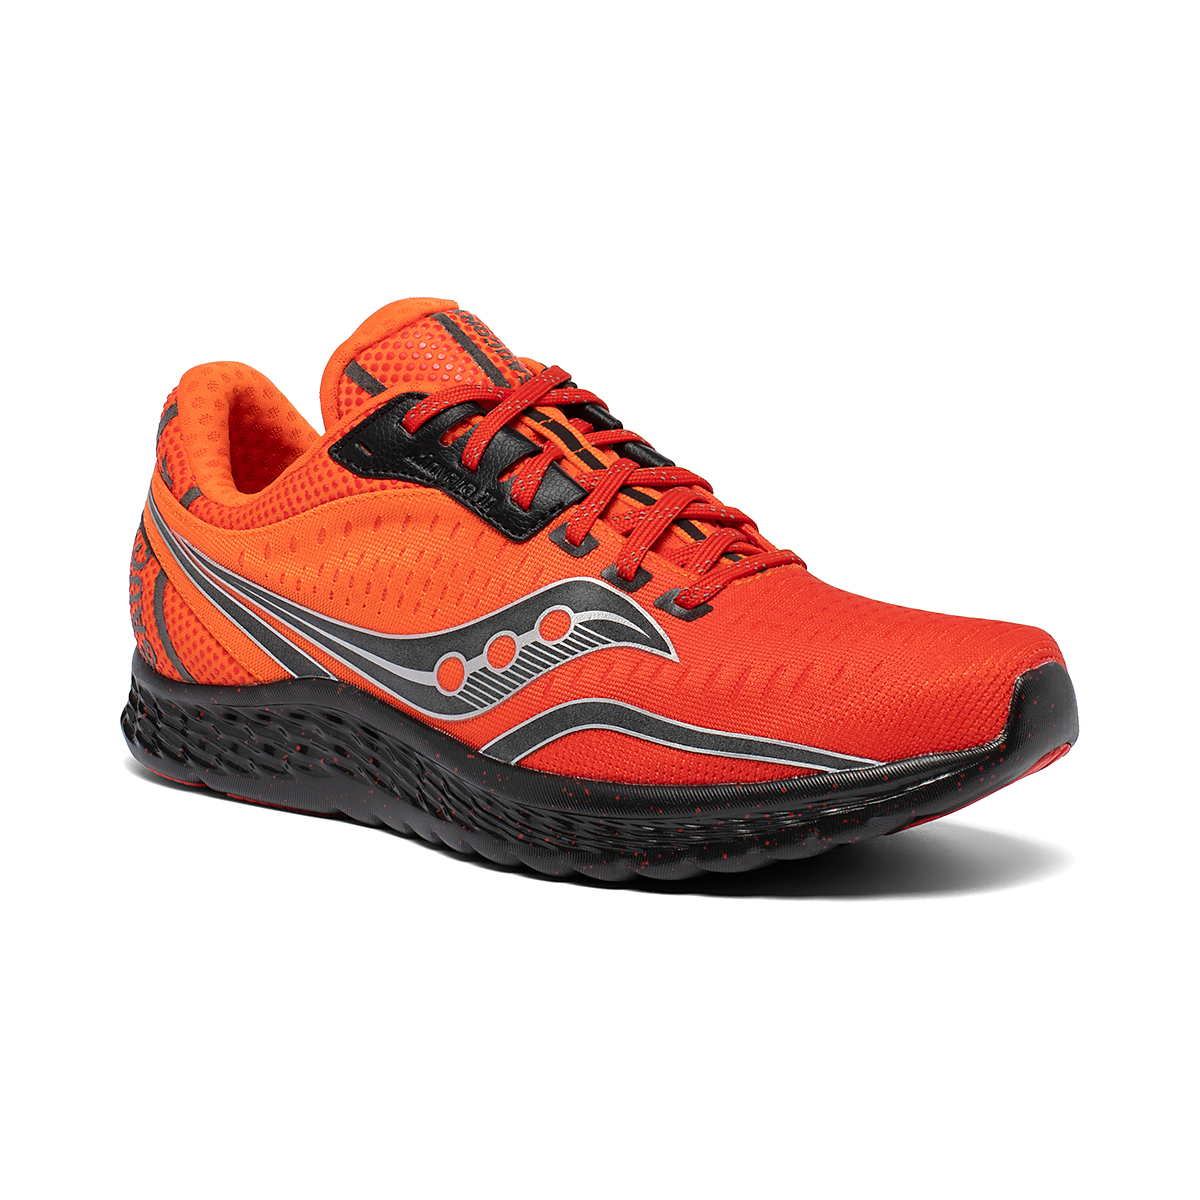 Saucony Shoes with Soul Kinvara 11 Running Shoe - Color: Eddie - Size: M3.5/W5 - Width: Regular, Eddie, large, image 4